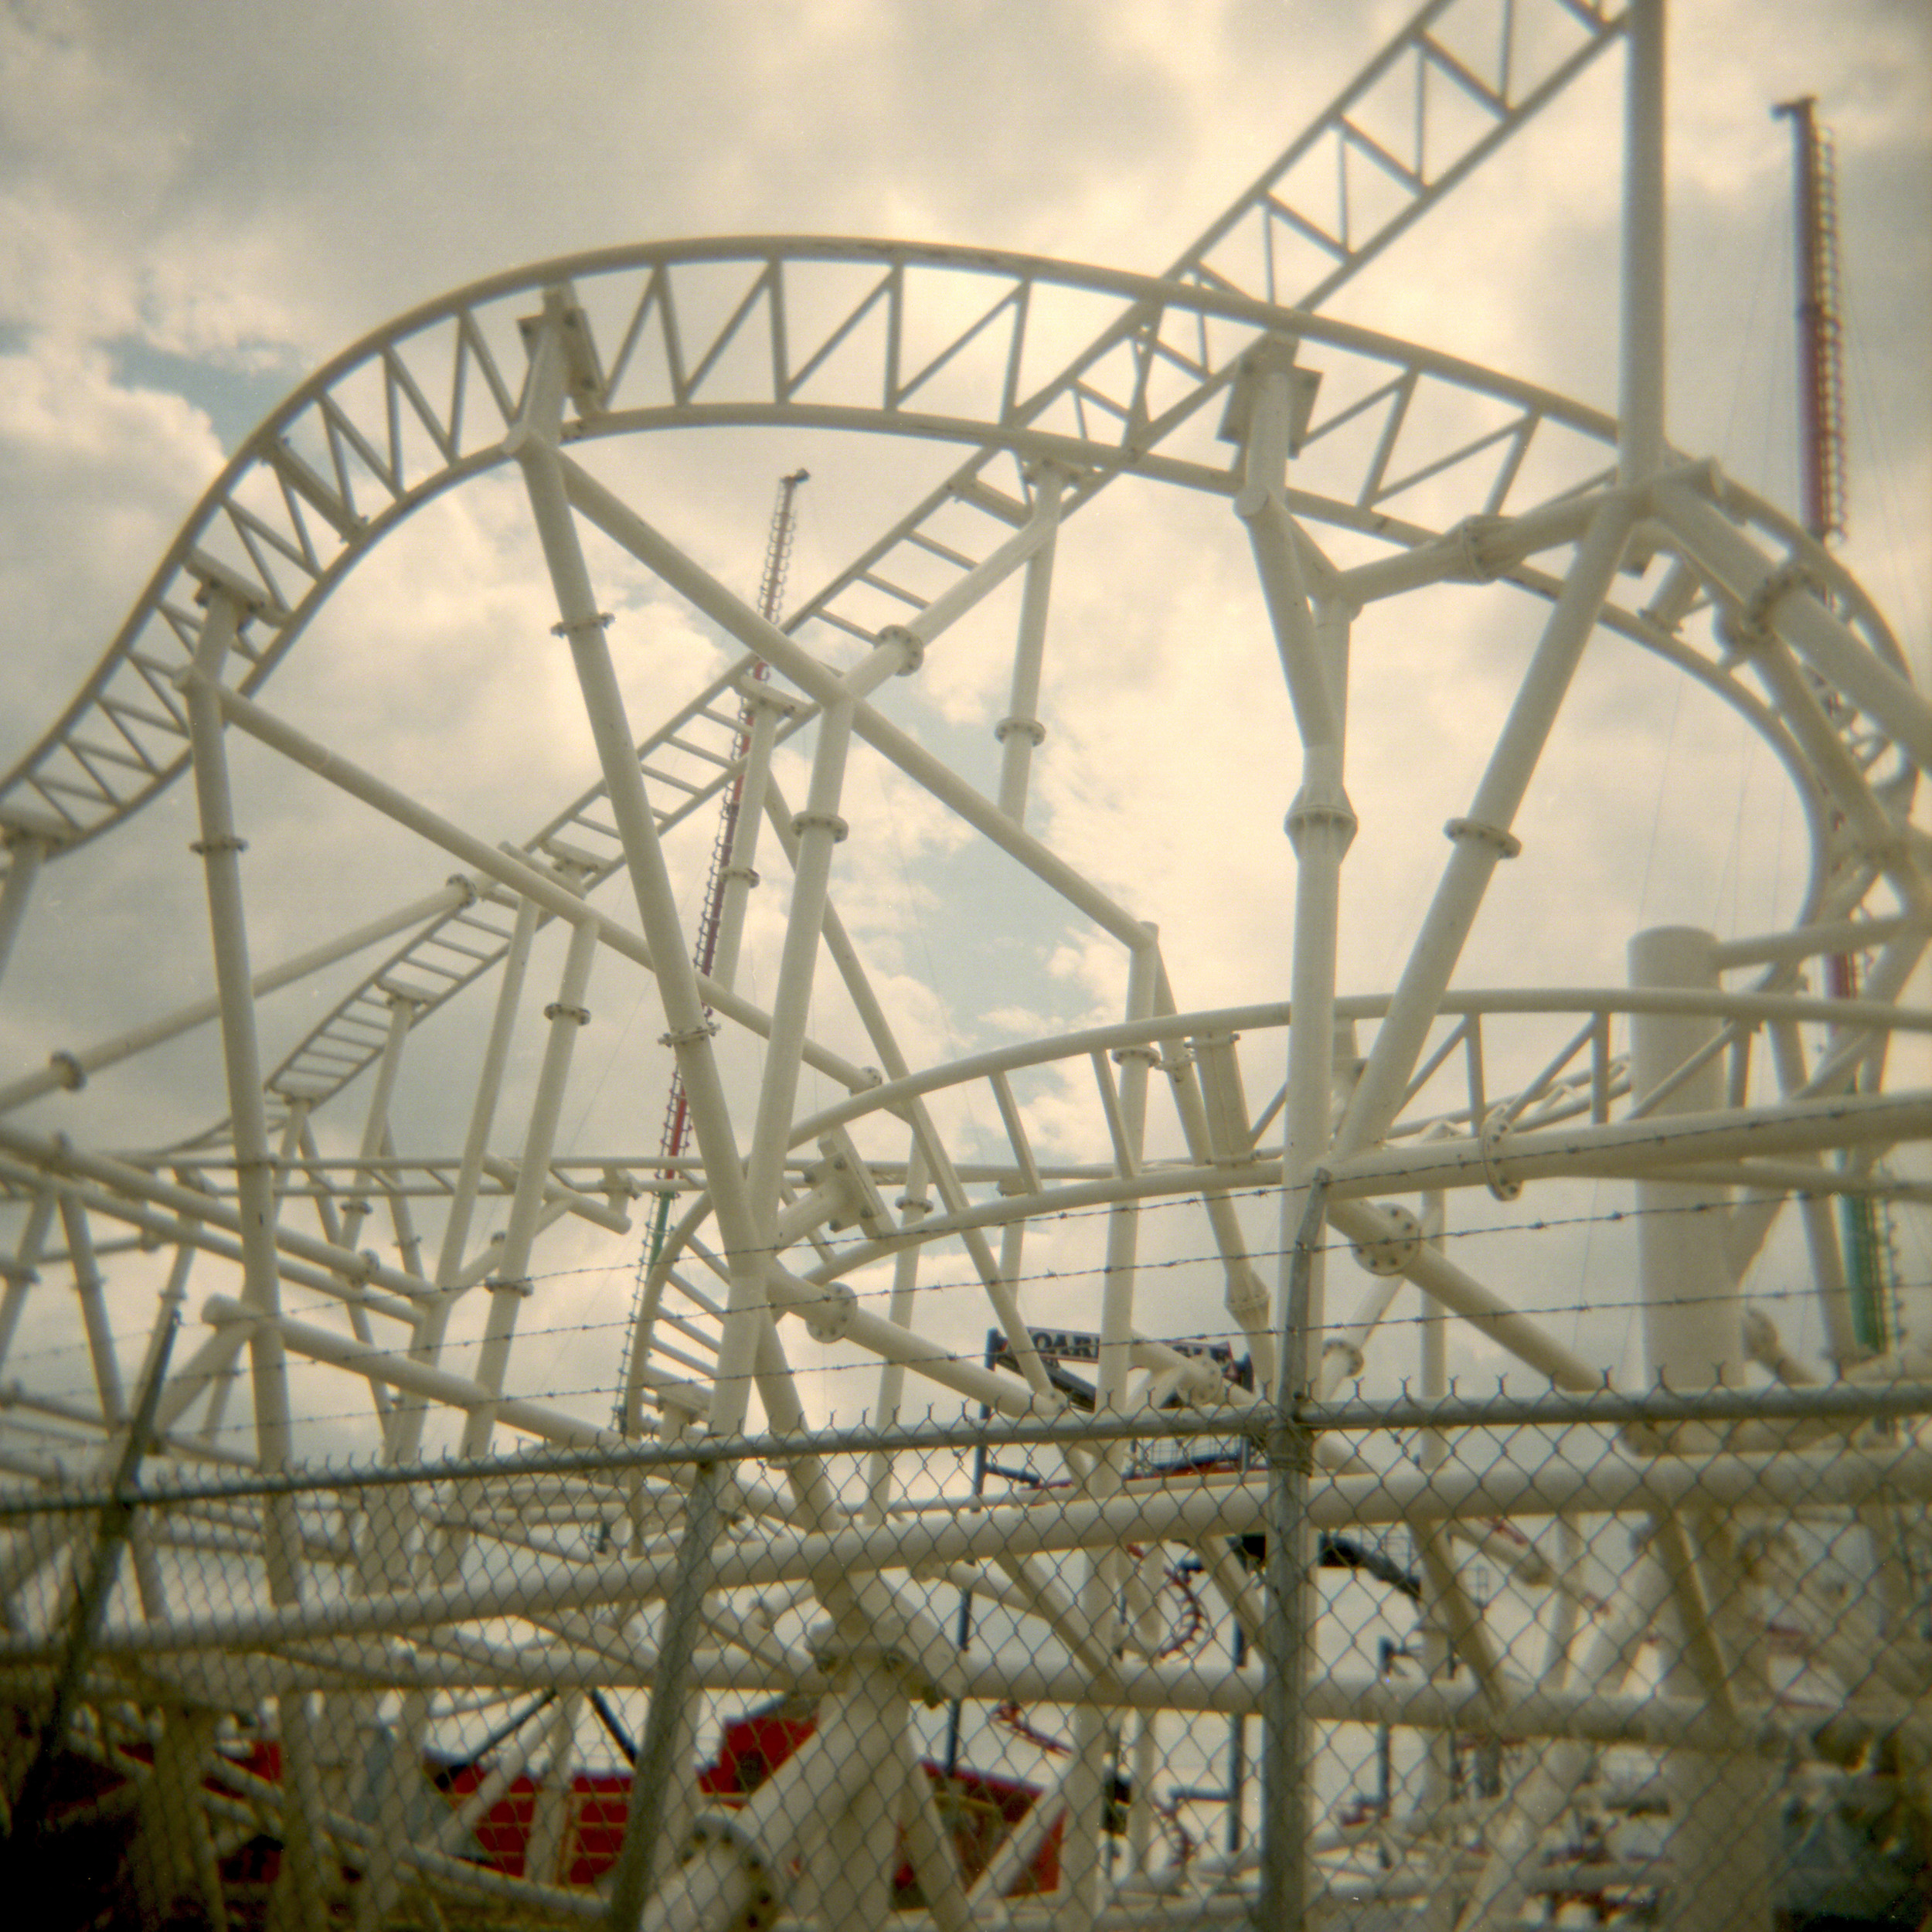 Roller Coaster 2011 ,Colour 120 film  Holga camera